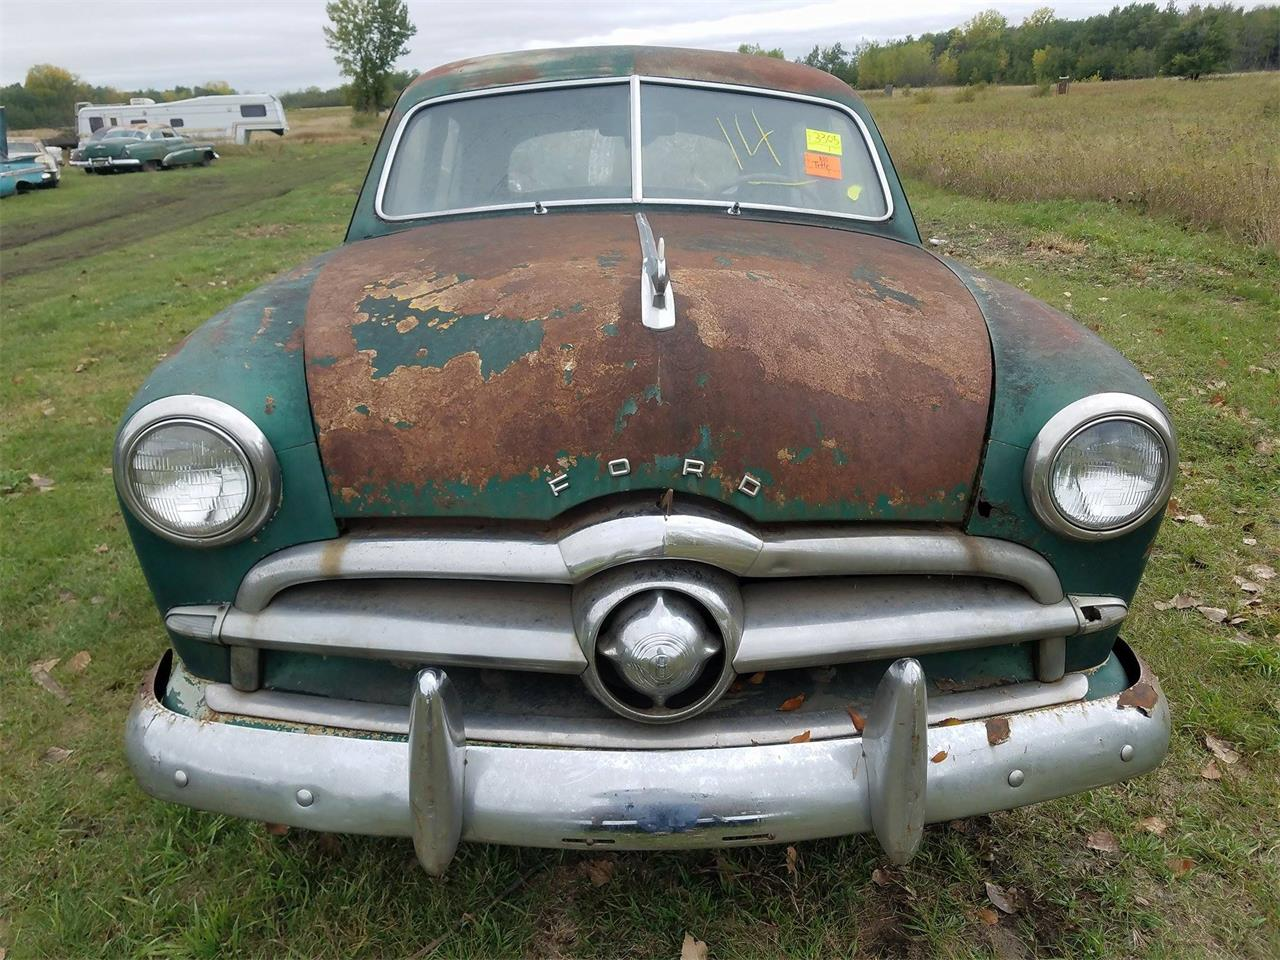 1949 Ford Sedan for sale in Thief River Falls, MN – photo 2